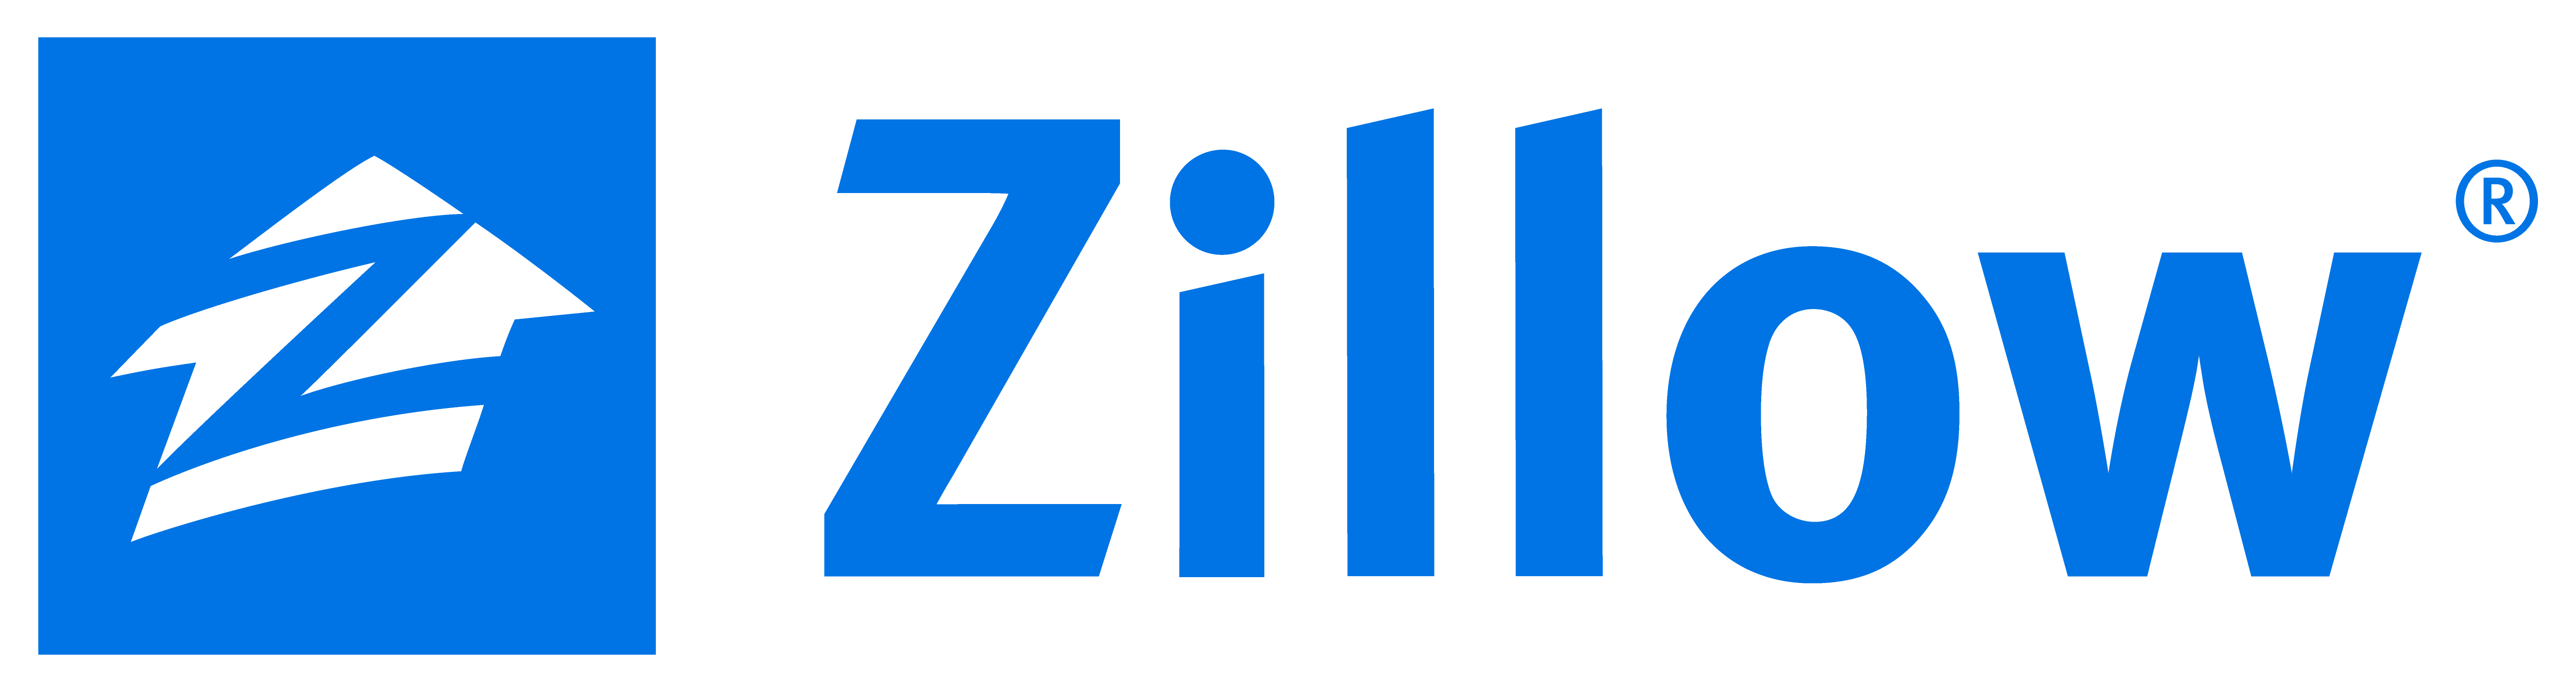 Reviews on Zillow